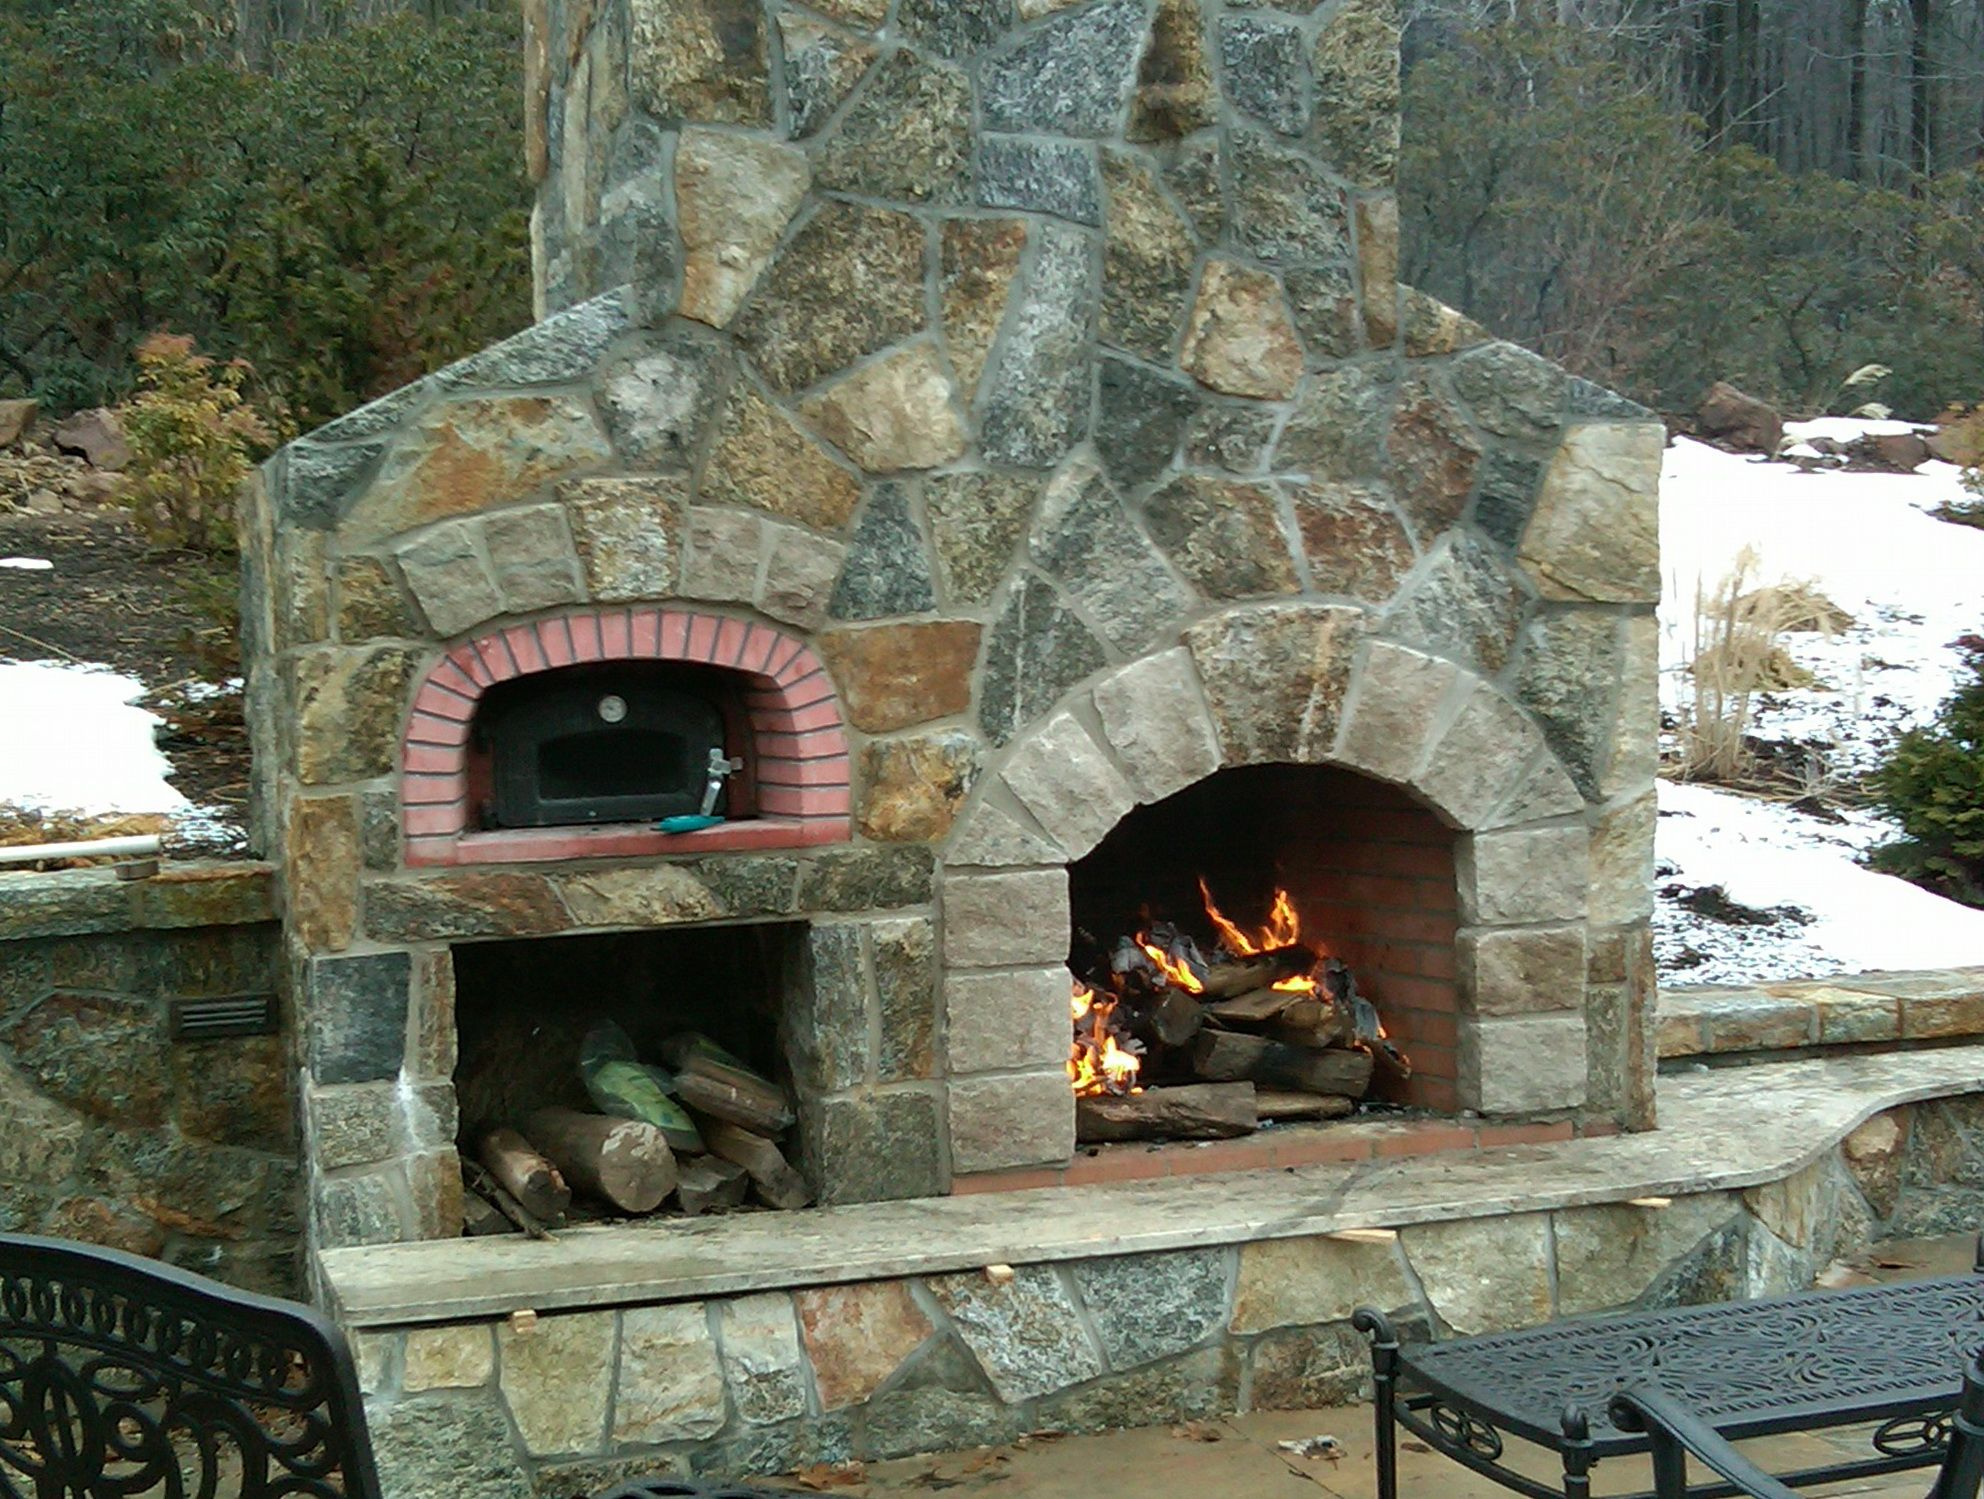 Outdoor Fireplace With Pizza Oven Above   Outdoor Fireplace With .  Outdoor Fireplace And Pizza Oven